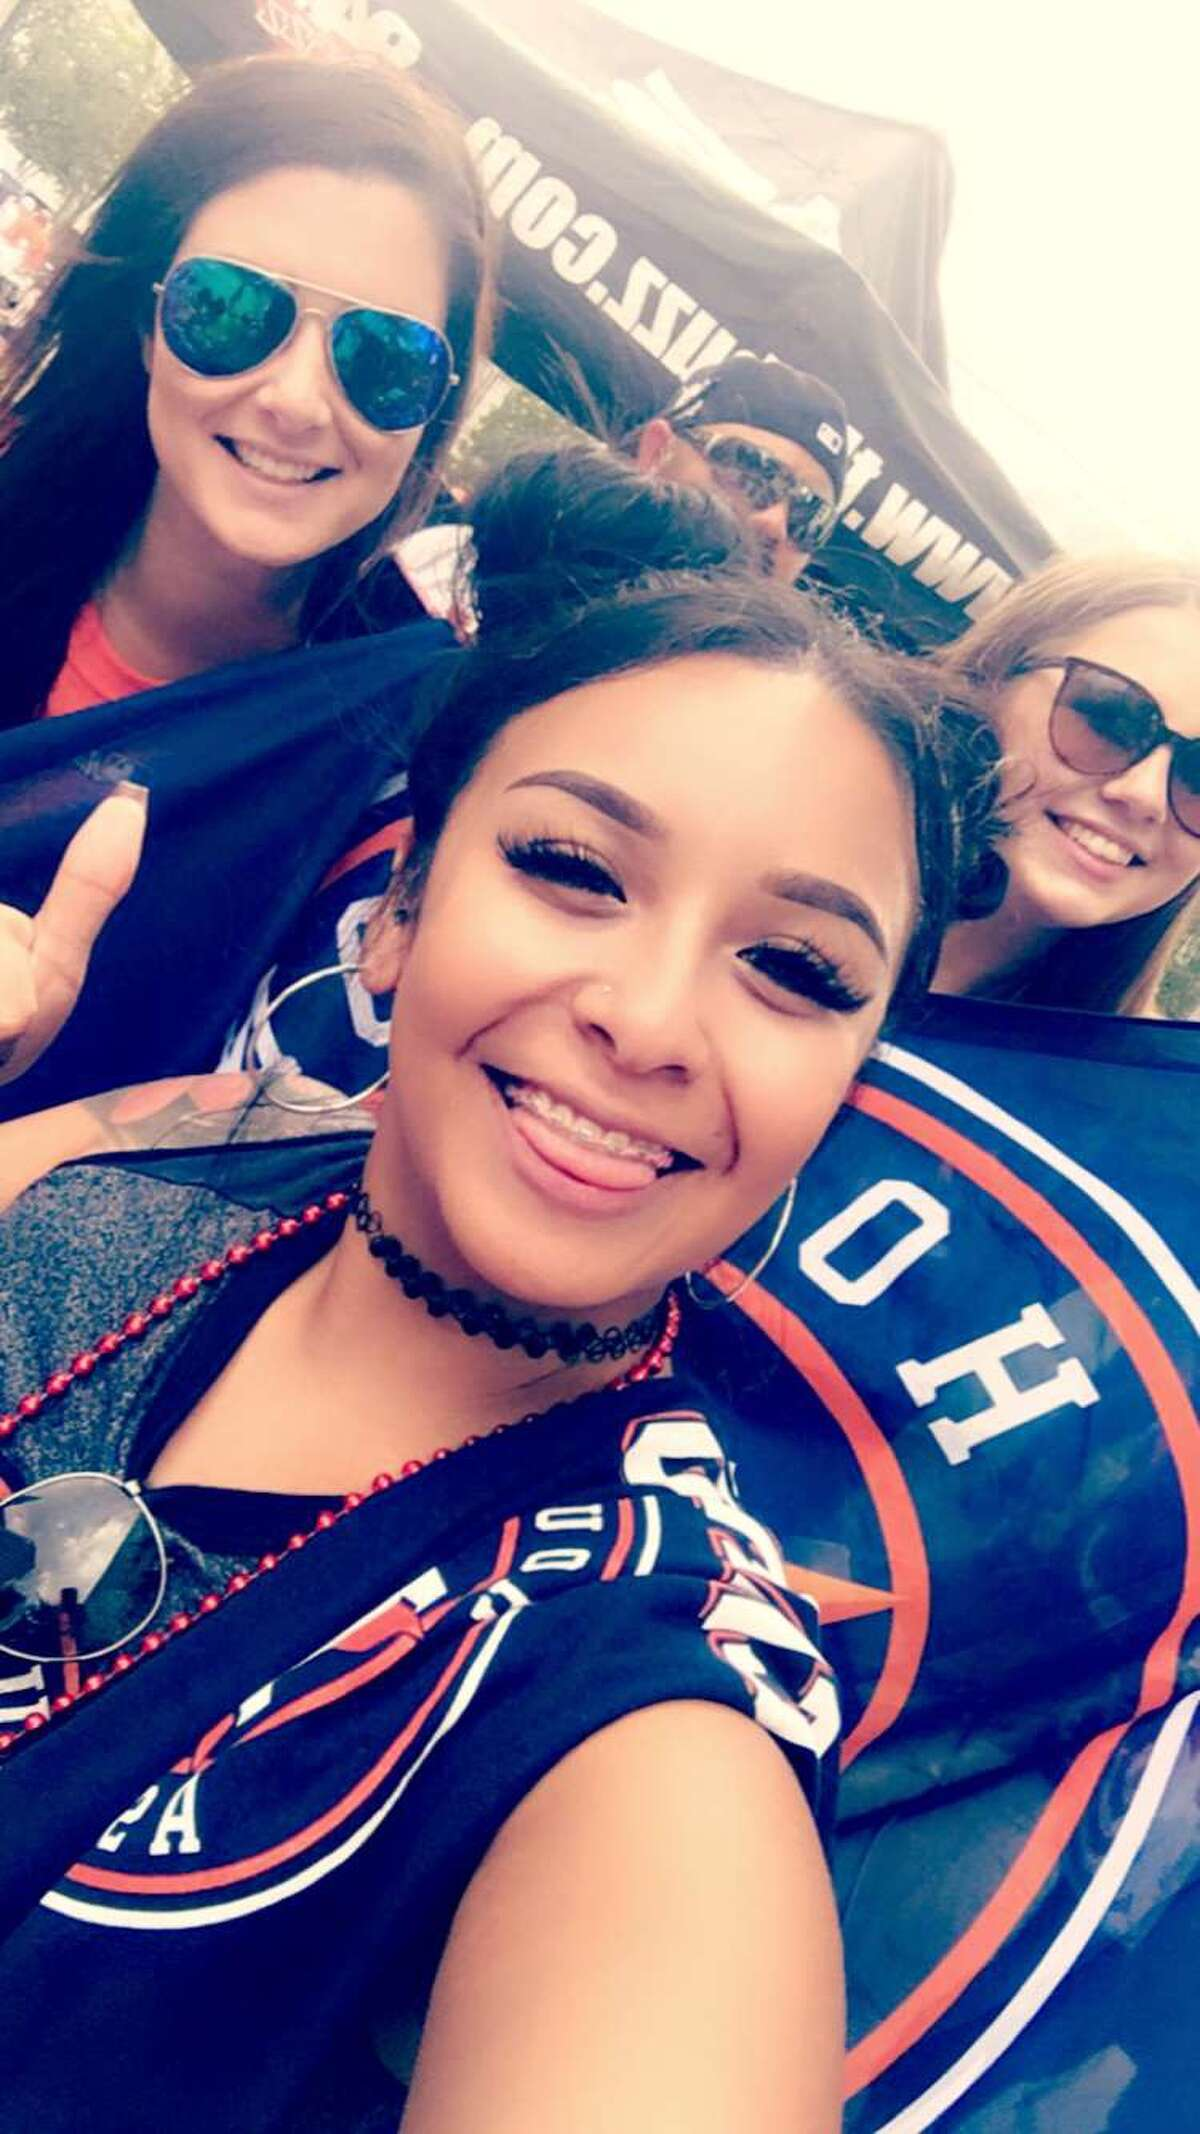 Following the Astros winning the World Series Championship, fans from around the world shared photos of themselves in their championship gear with Chron.com.